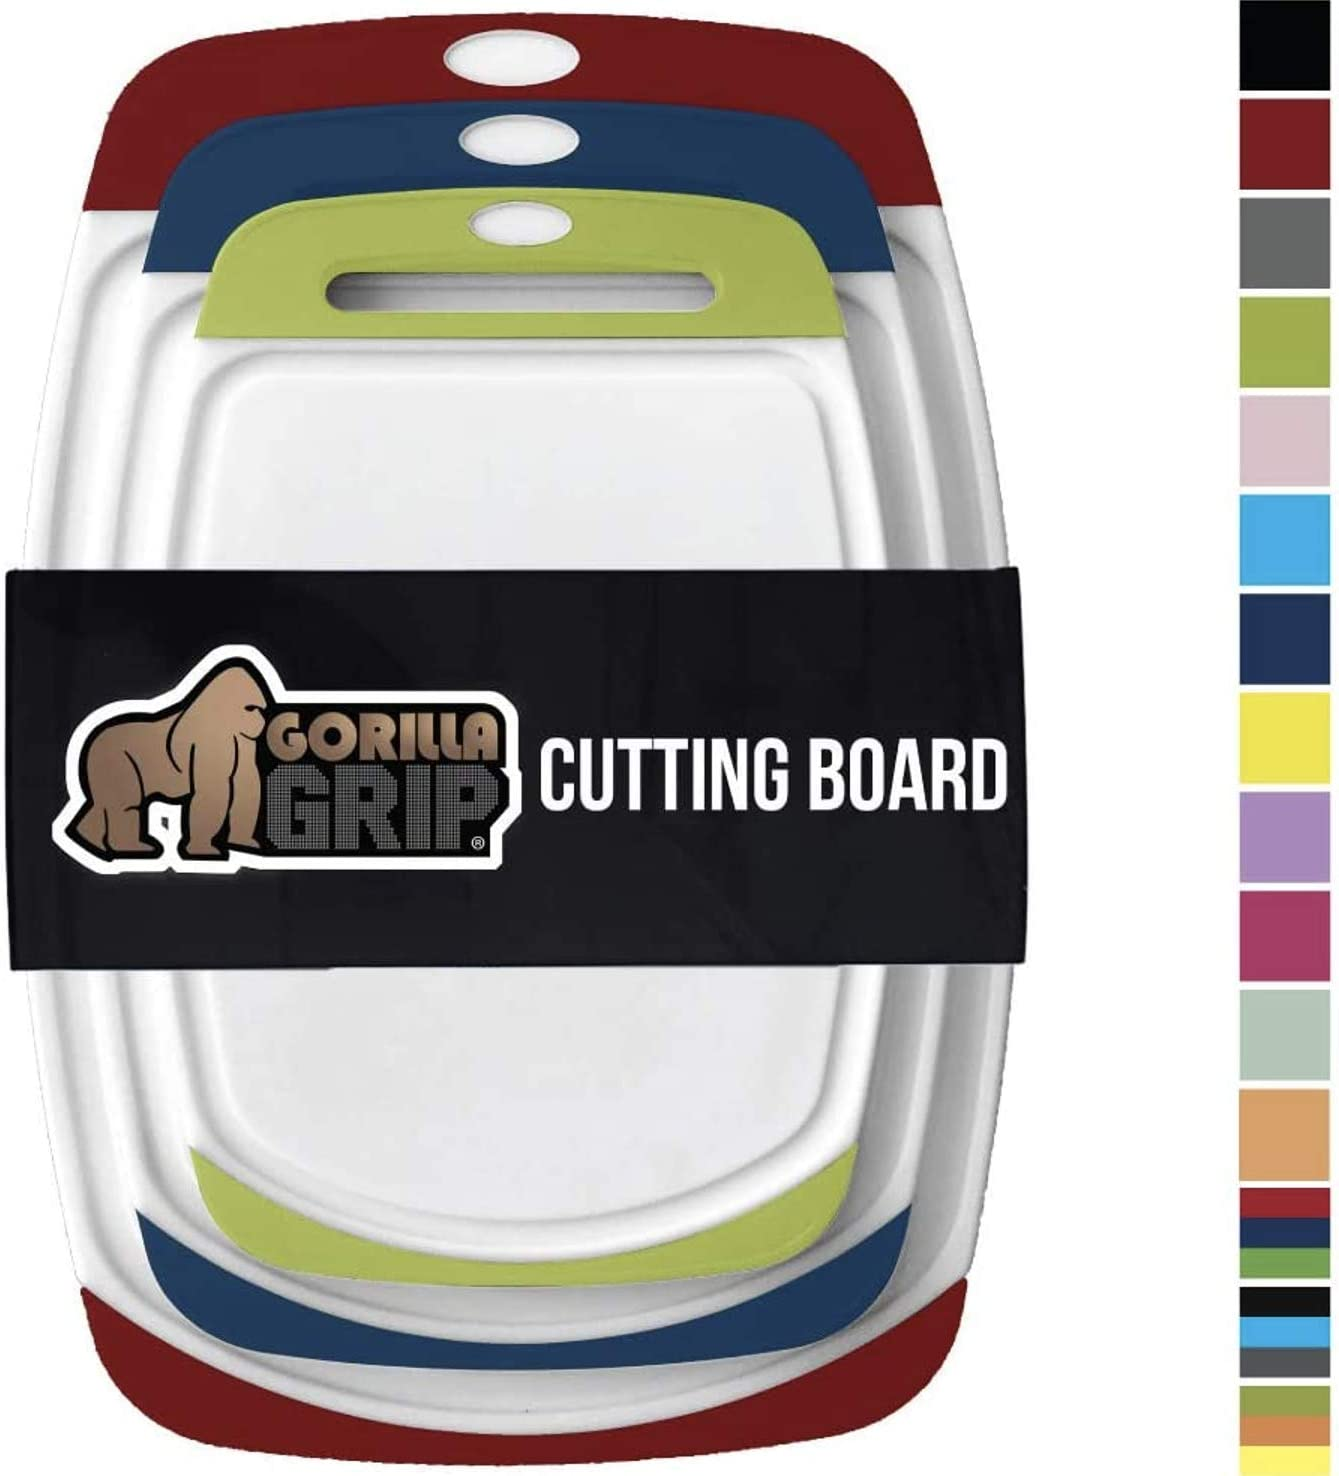 GORILLA GRIP Original Oversized Cutting Board, 3 Piece, BPA Free, Dishwasher Safe, Juice Grooves, Larger Thicker Boards, Easy Grip Handle, Non Porous, Extra Large, Set of 3, Red, Blue, Lime Green